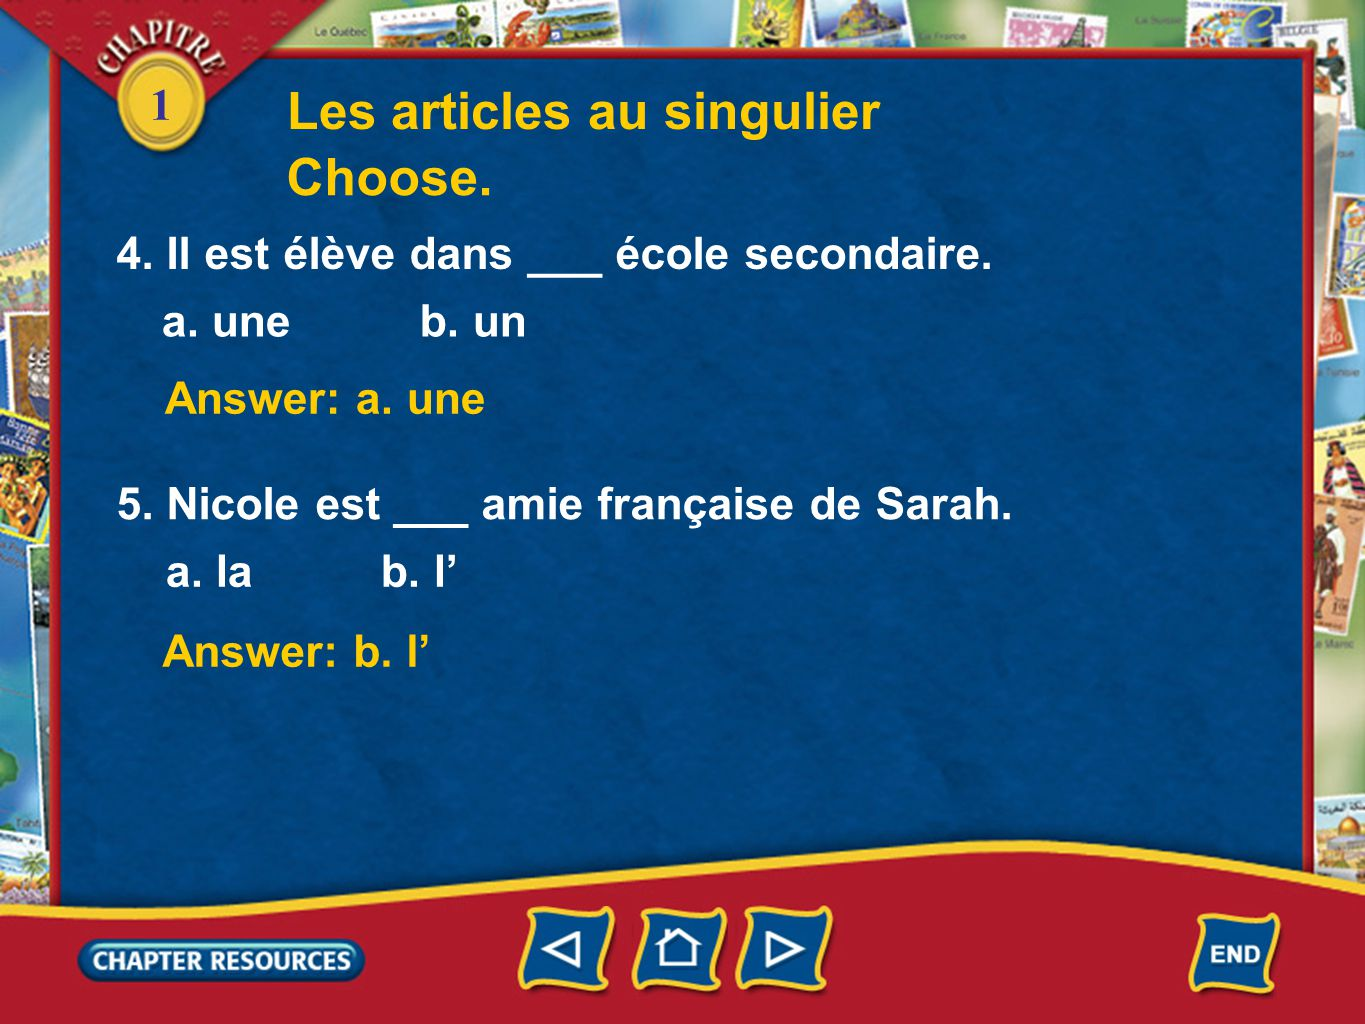 Les articles au singulier Choose.